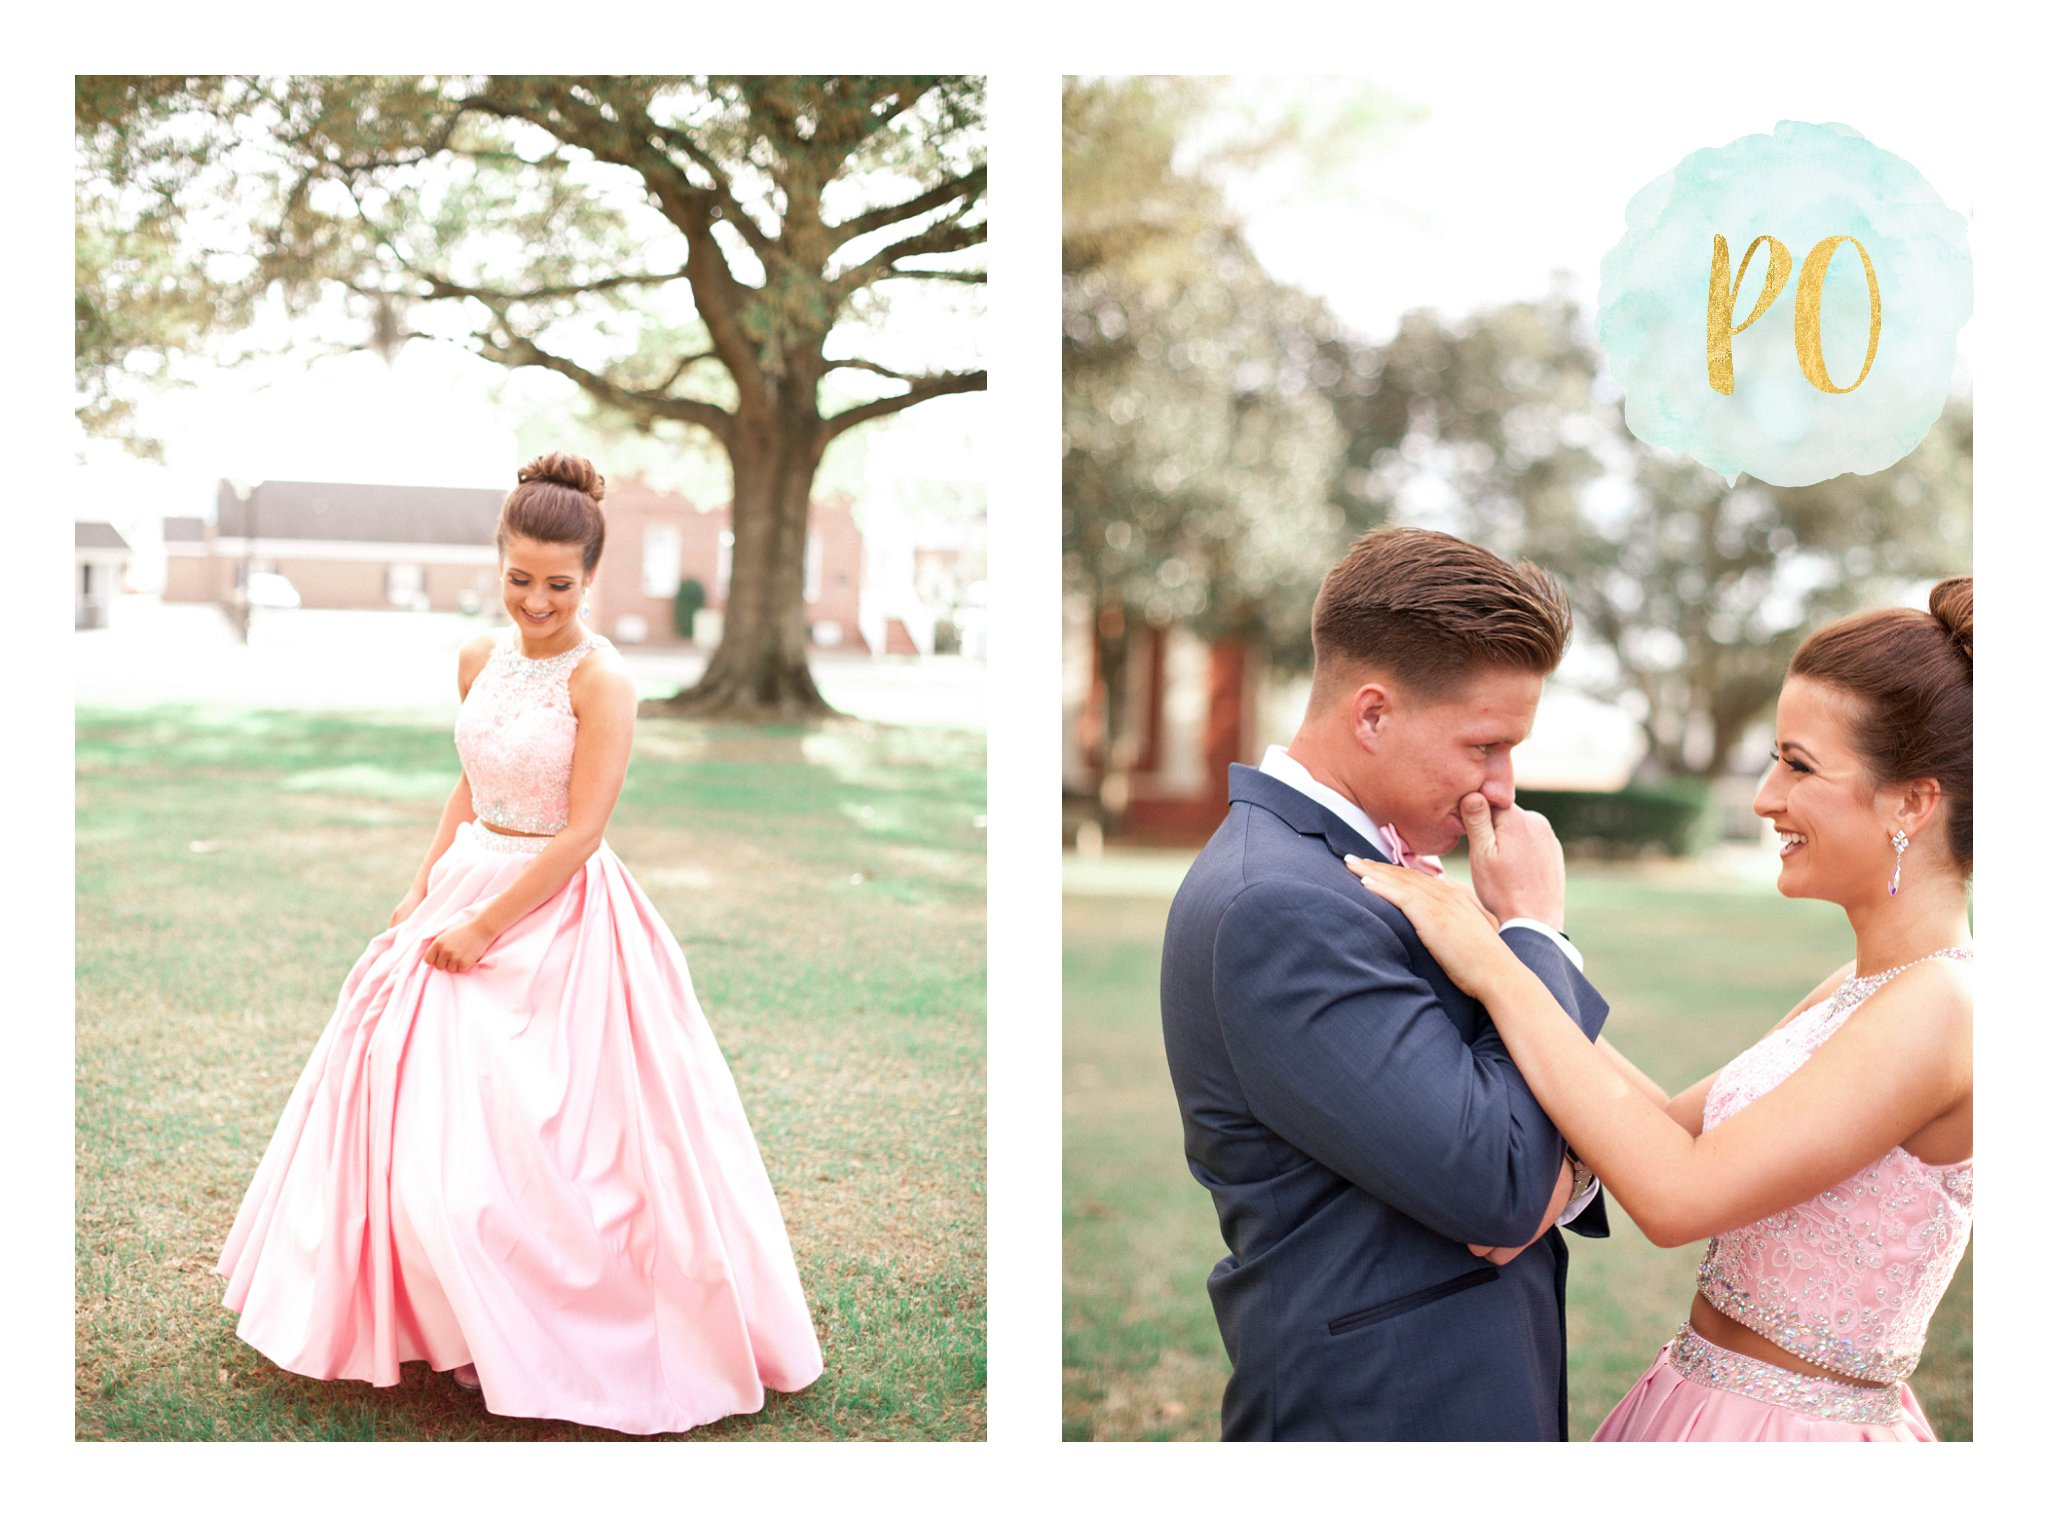 kylee_christian_prom_poured_out_photography-18_WEB.jpg